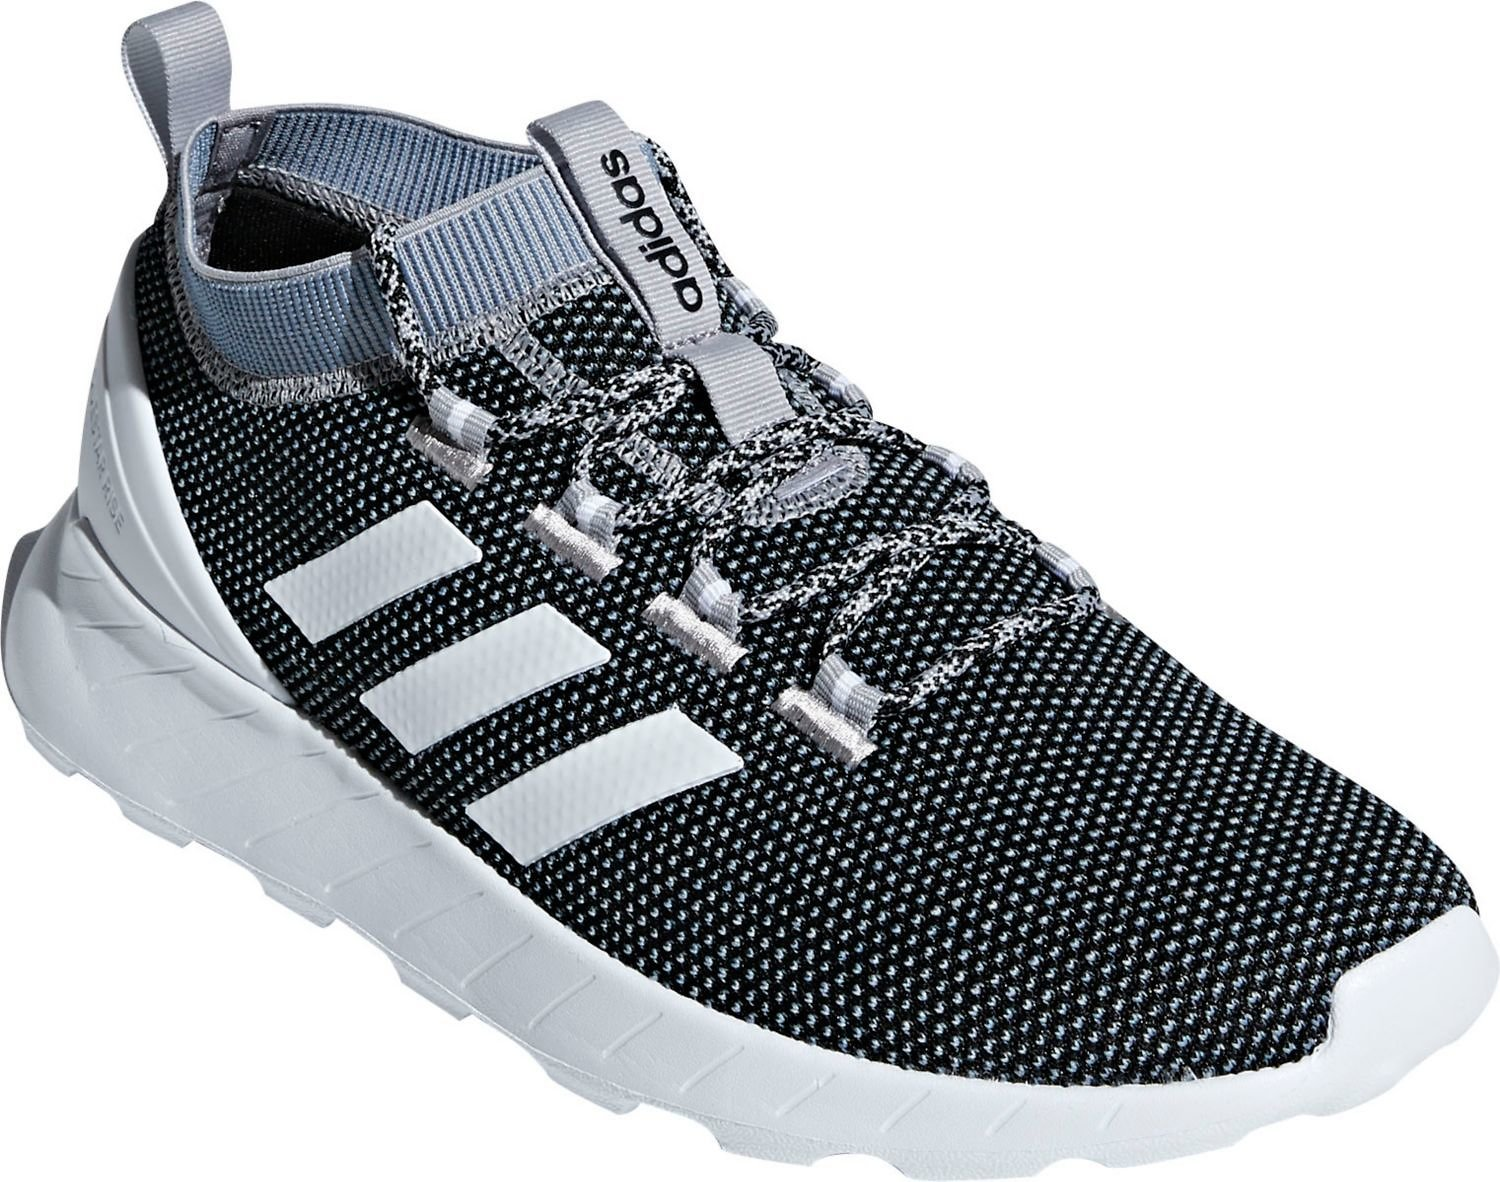 Adidas Men's Questar Rise Shoes (2 Colors) + Free Ship